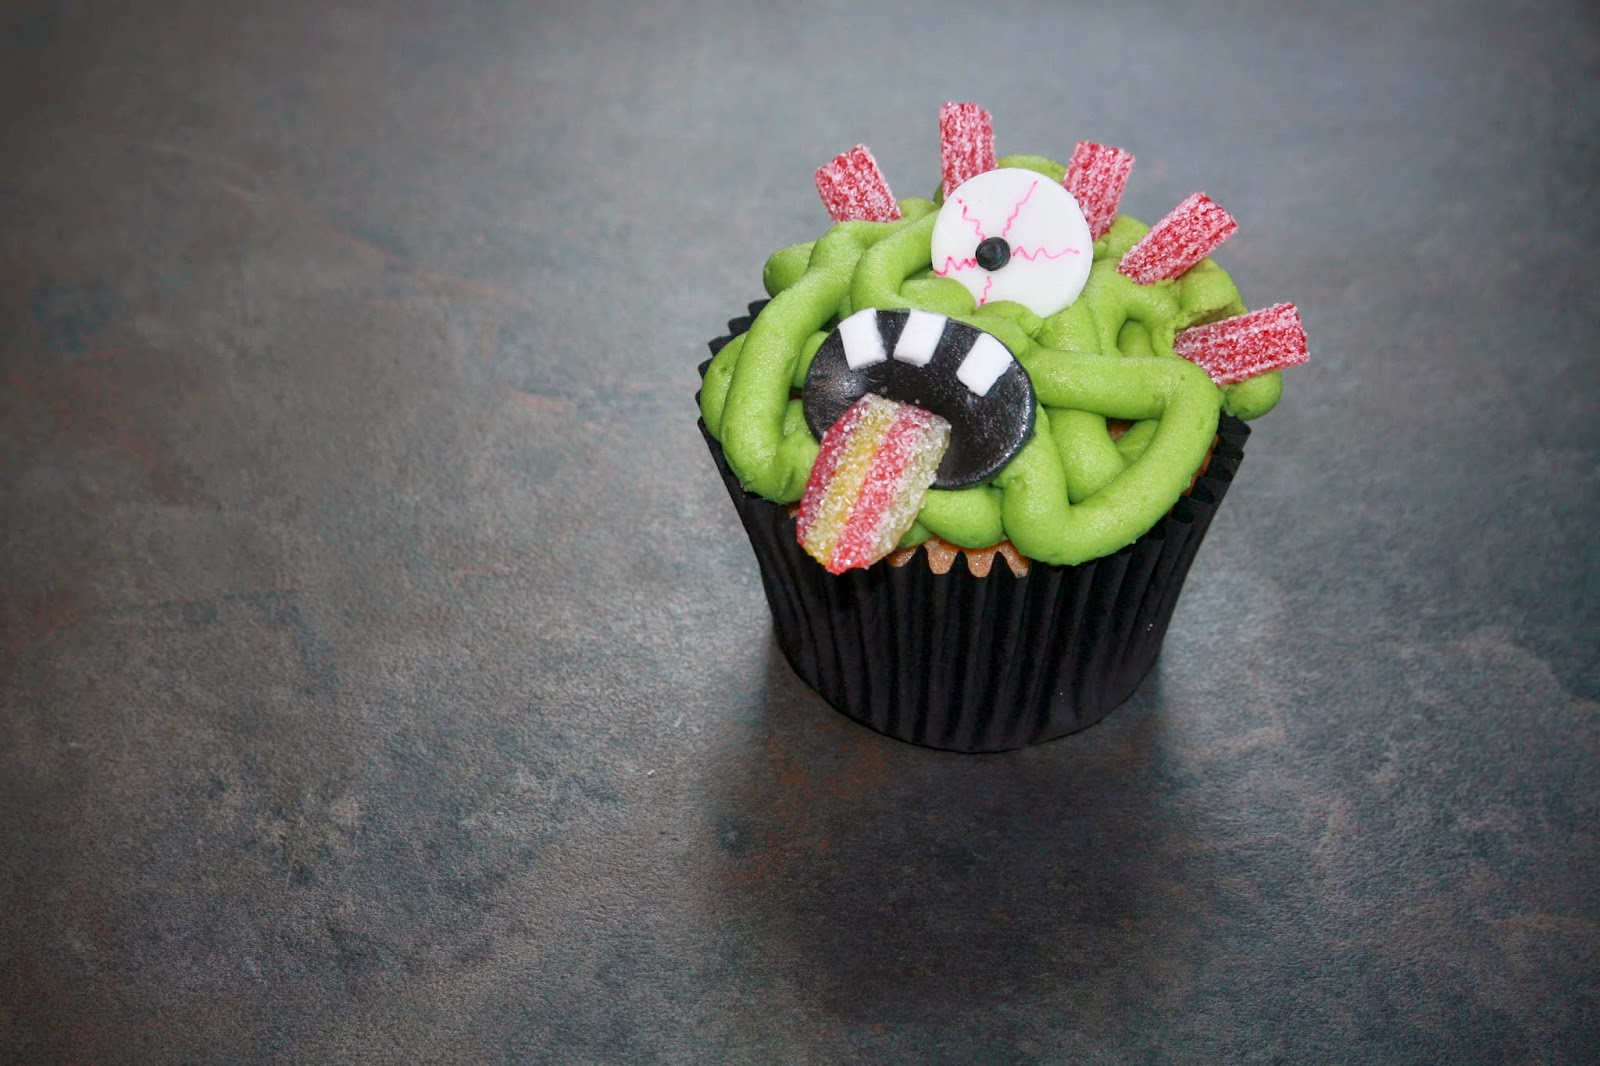 Green monster cupcake sticking out his multi-coloured tongue!